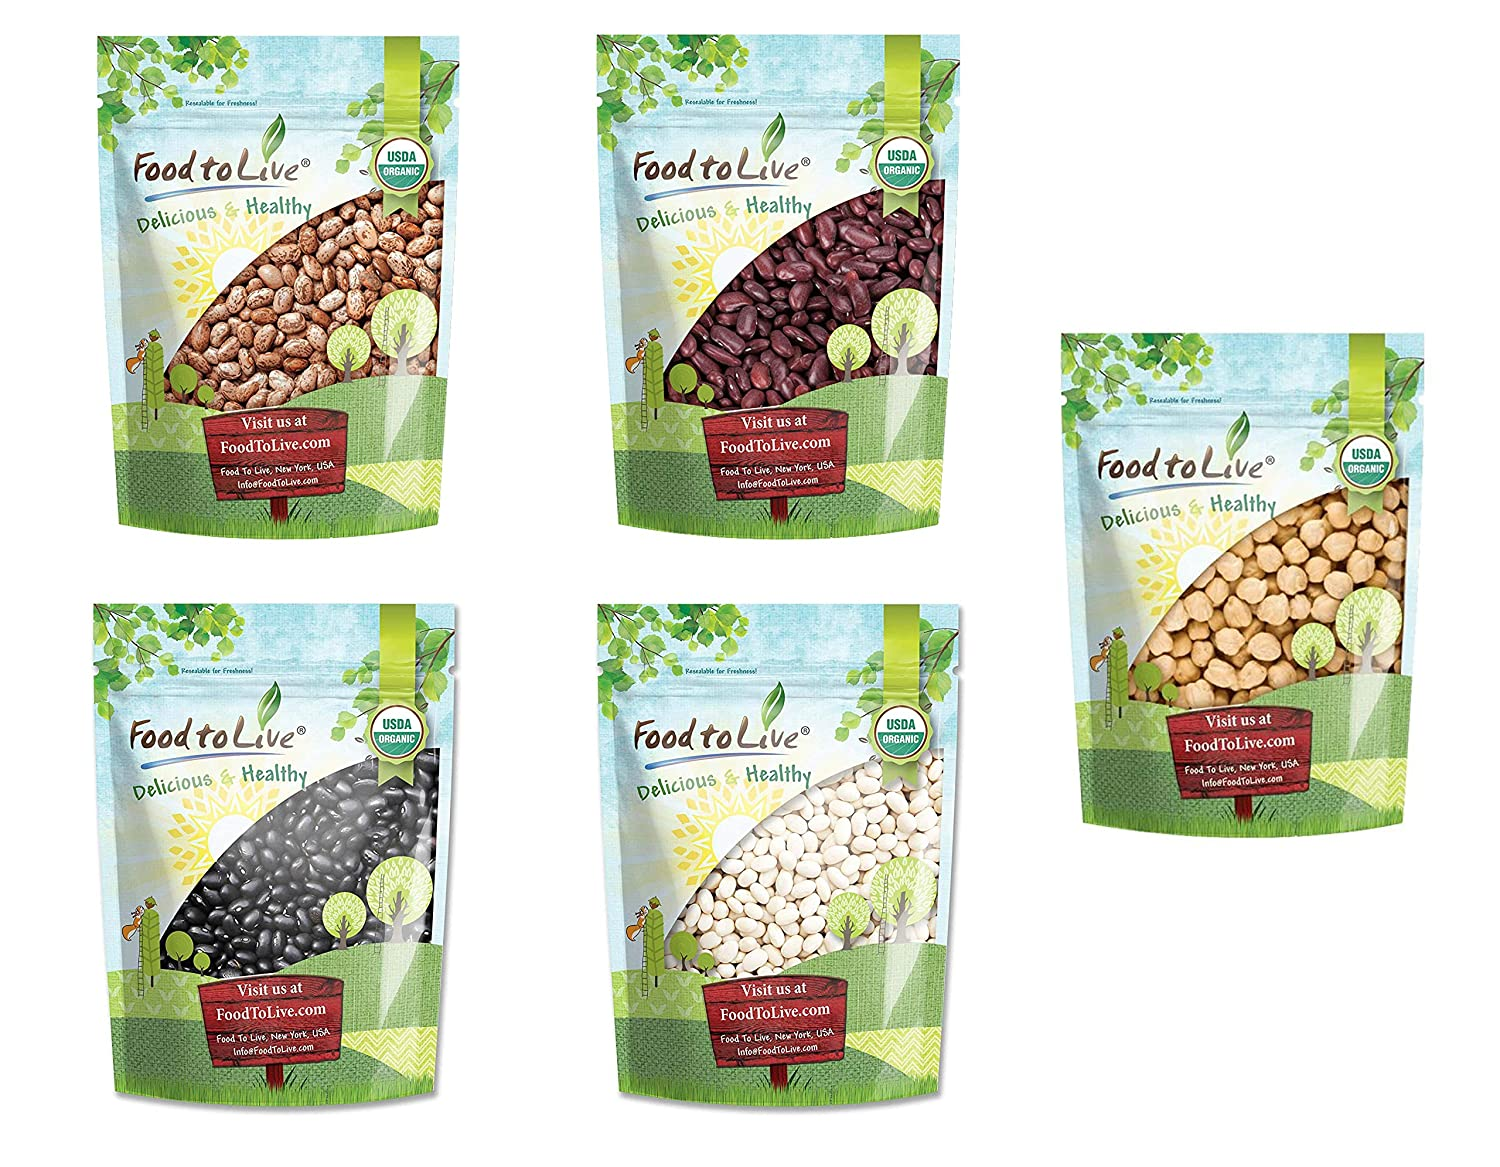 Organic Beans in a Gift Box - A Variety Pack of Pinto Beans, Dark Red Kidney Beans, Black Beans, Navy Beans, Garbanzo Beans